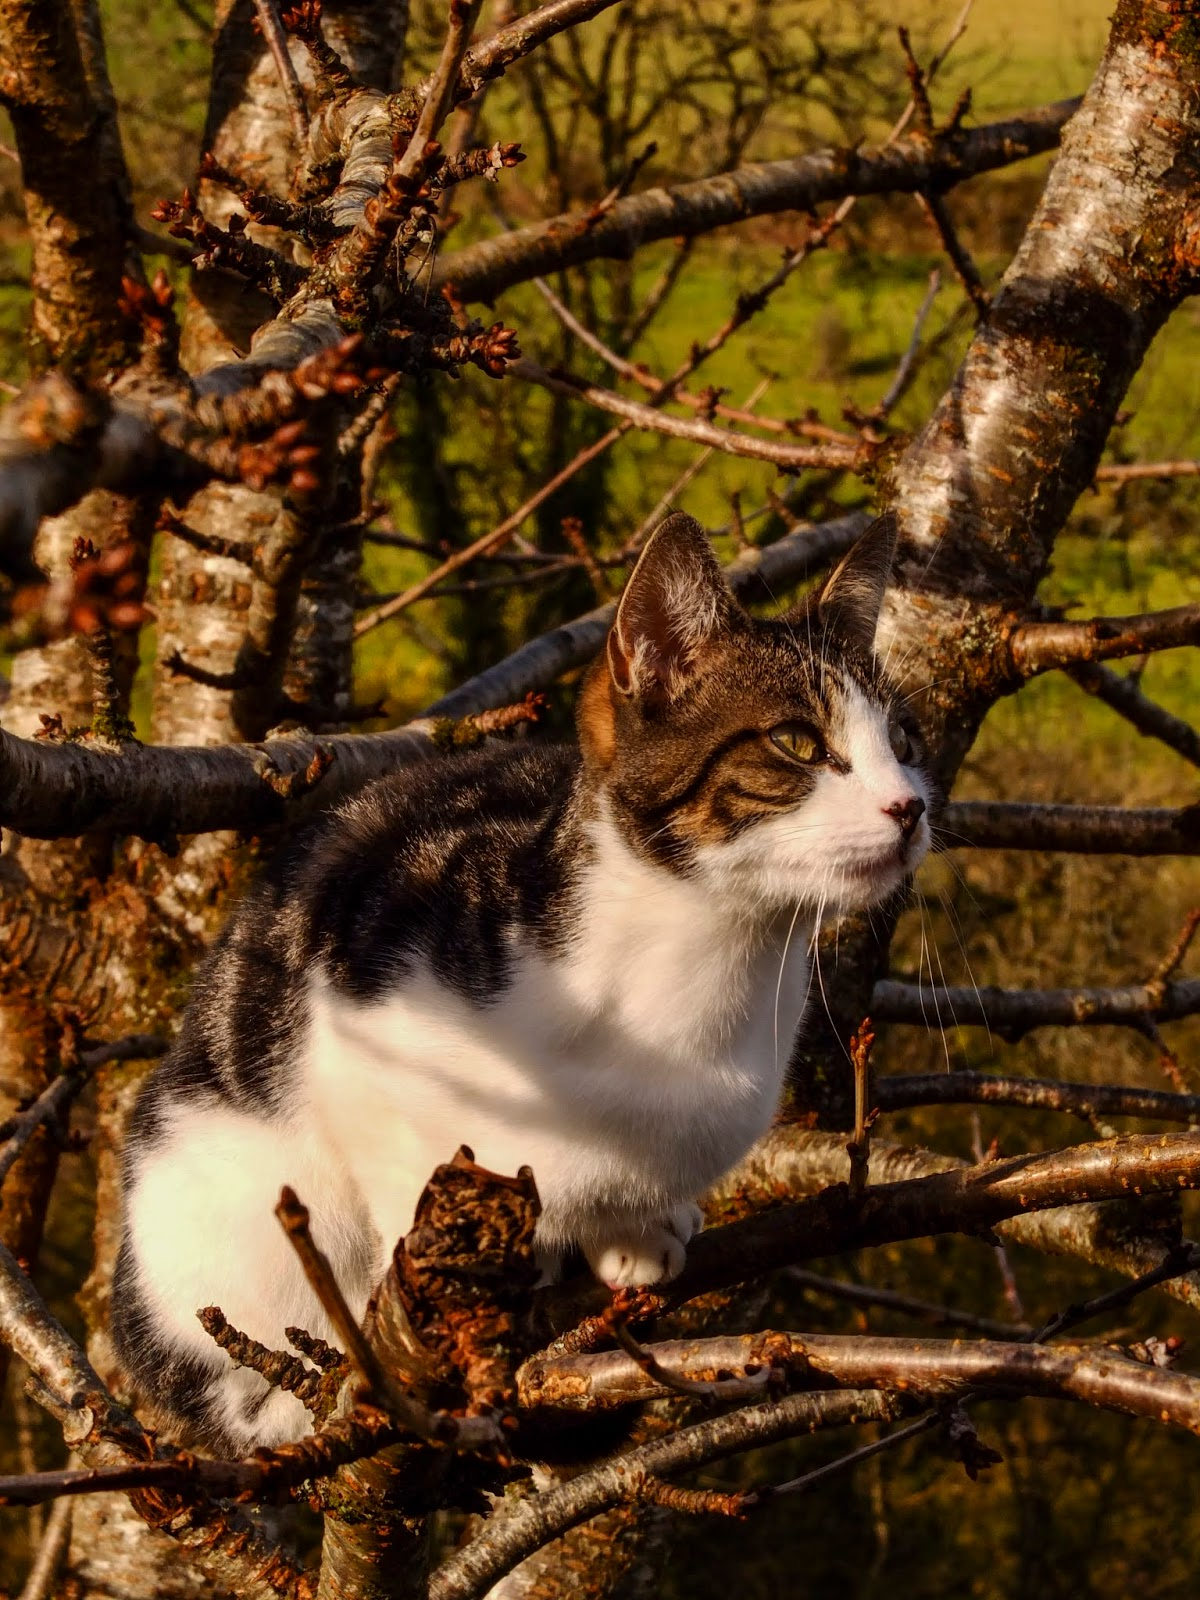 A white and brindle cat Sassy sitting in a bare cherry tree.